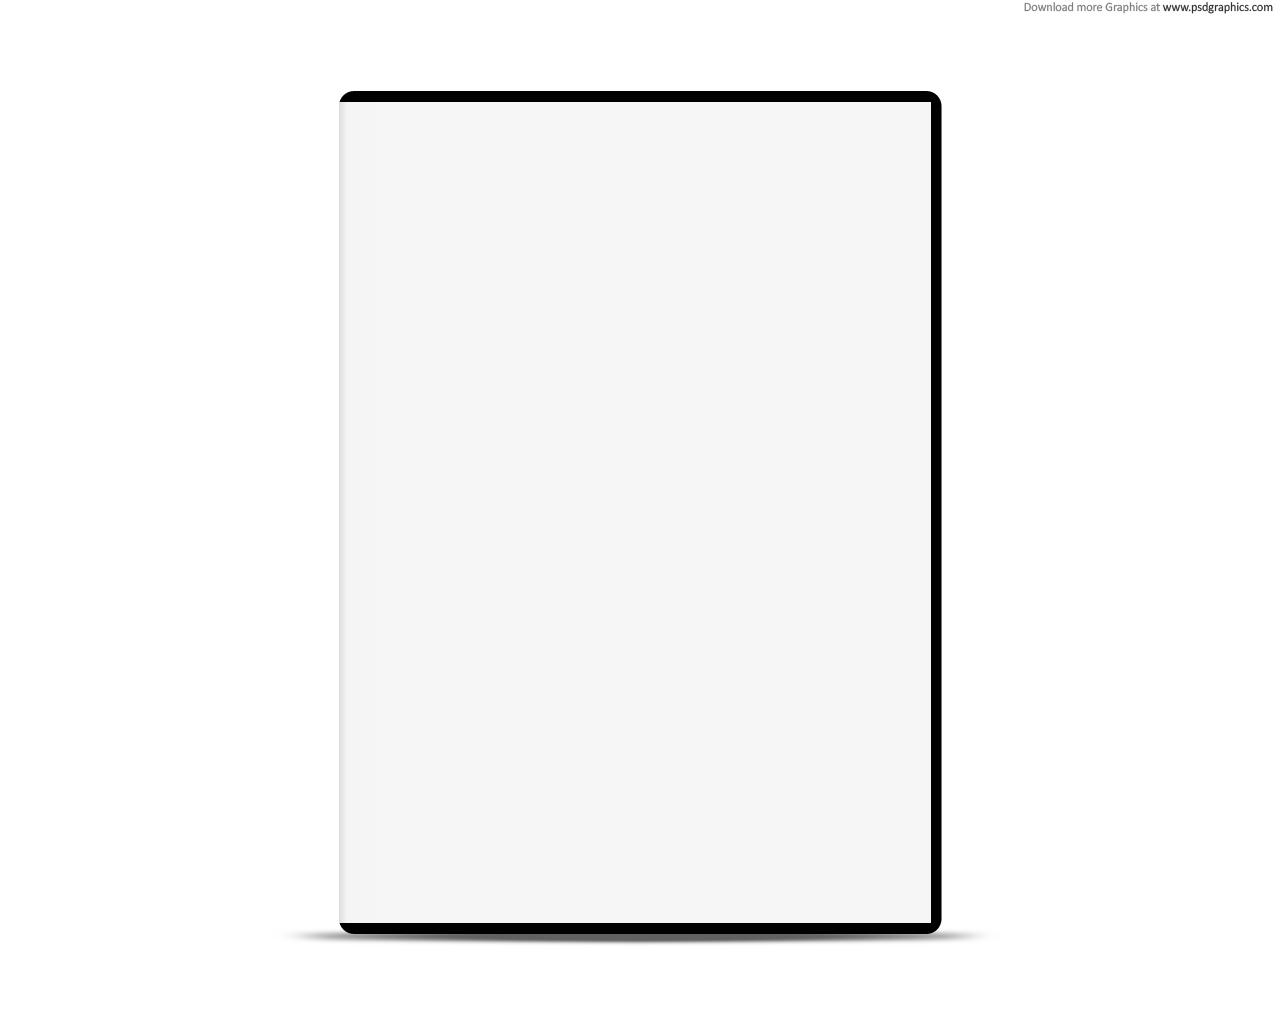 Blank DVD Case Cover Template